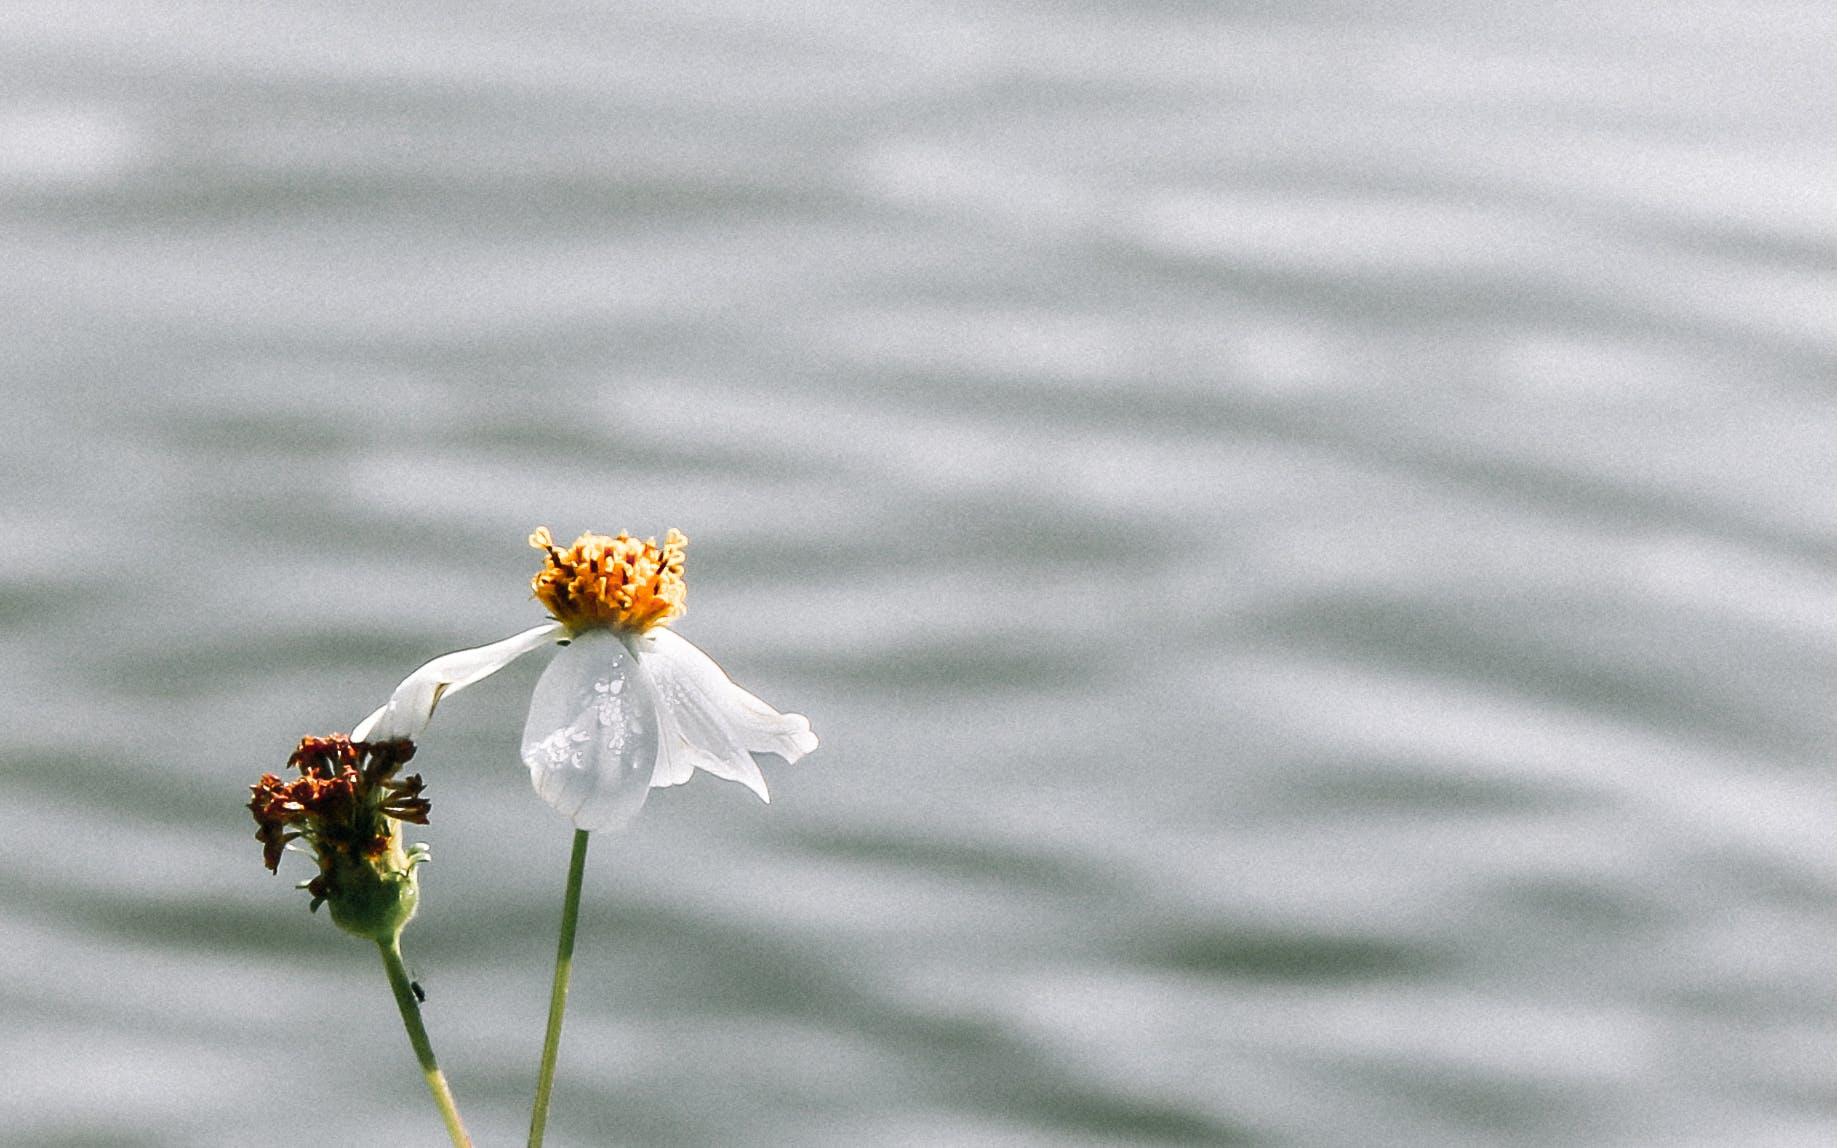 Free stock photo of beautiful flowers, daisy, flower, loneliness